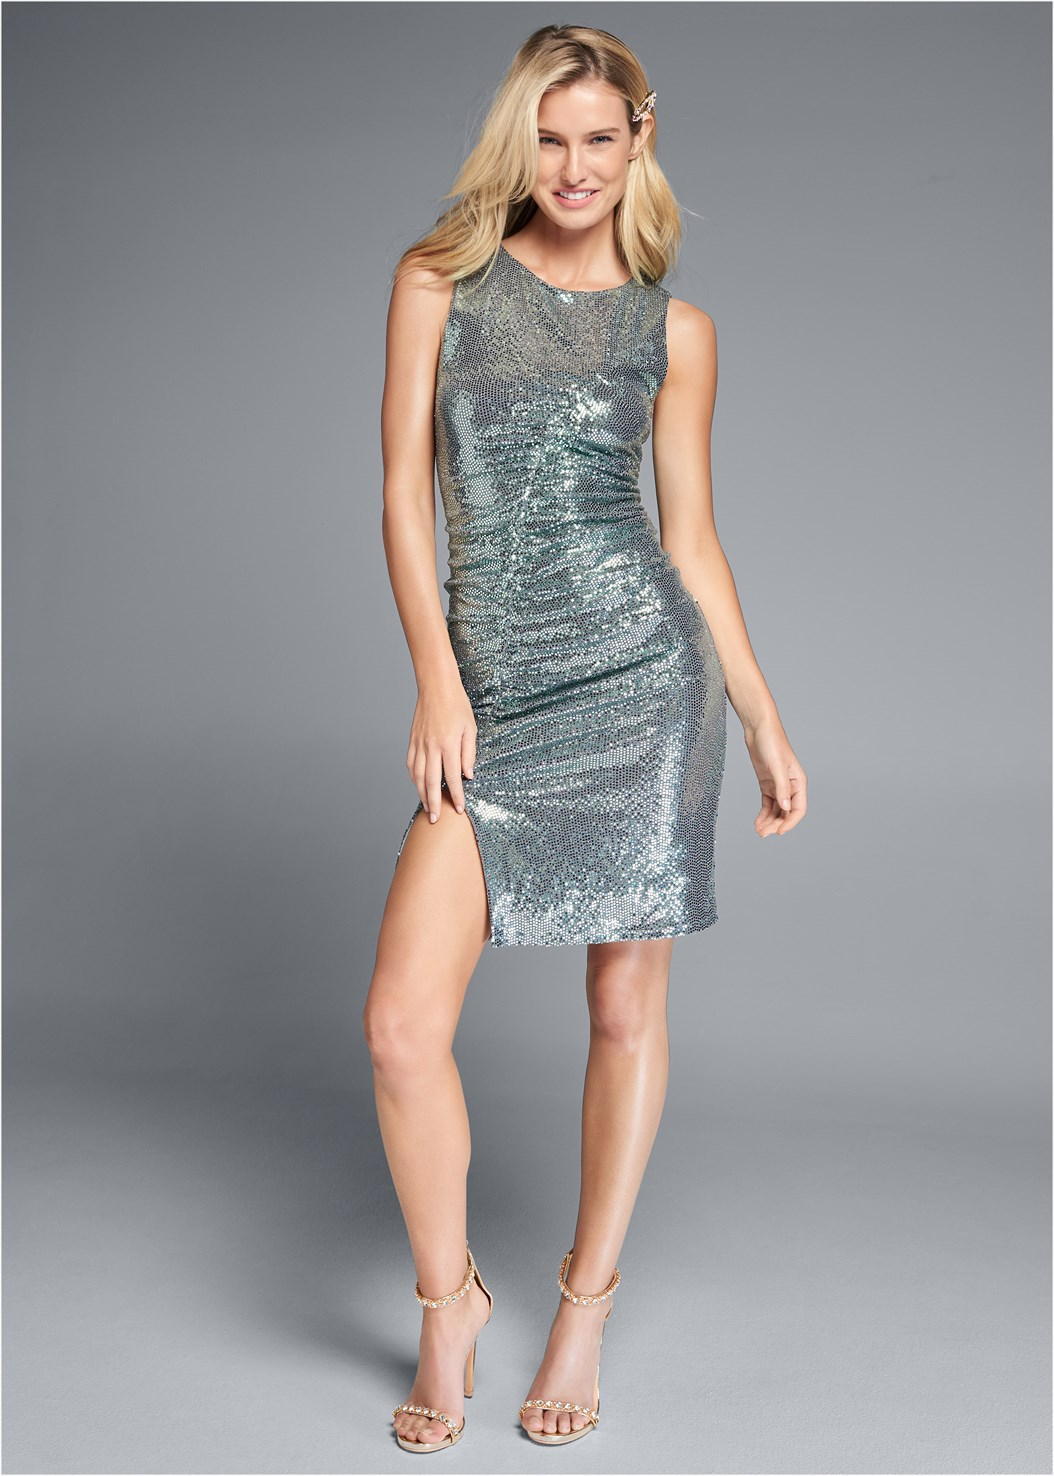 Ruched Sparkle Dress,Embellished Heels